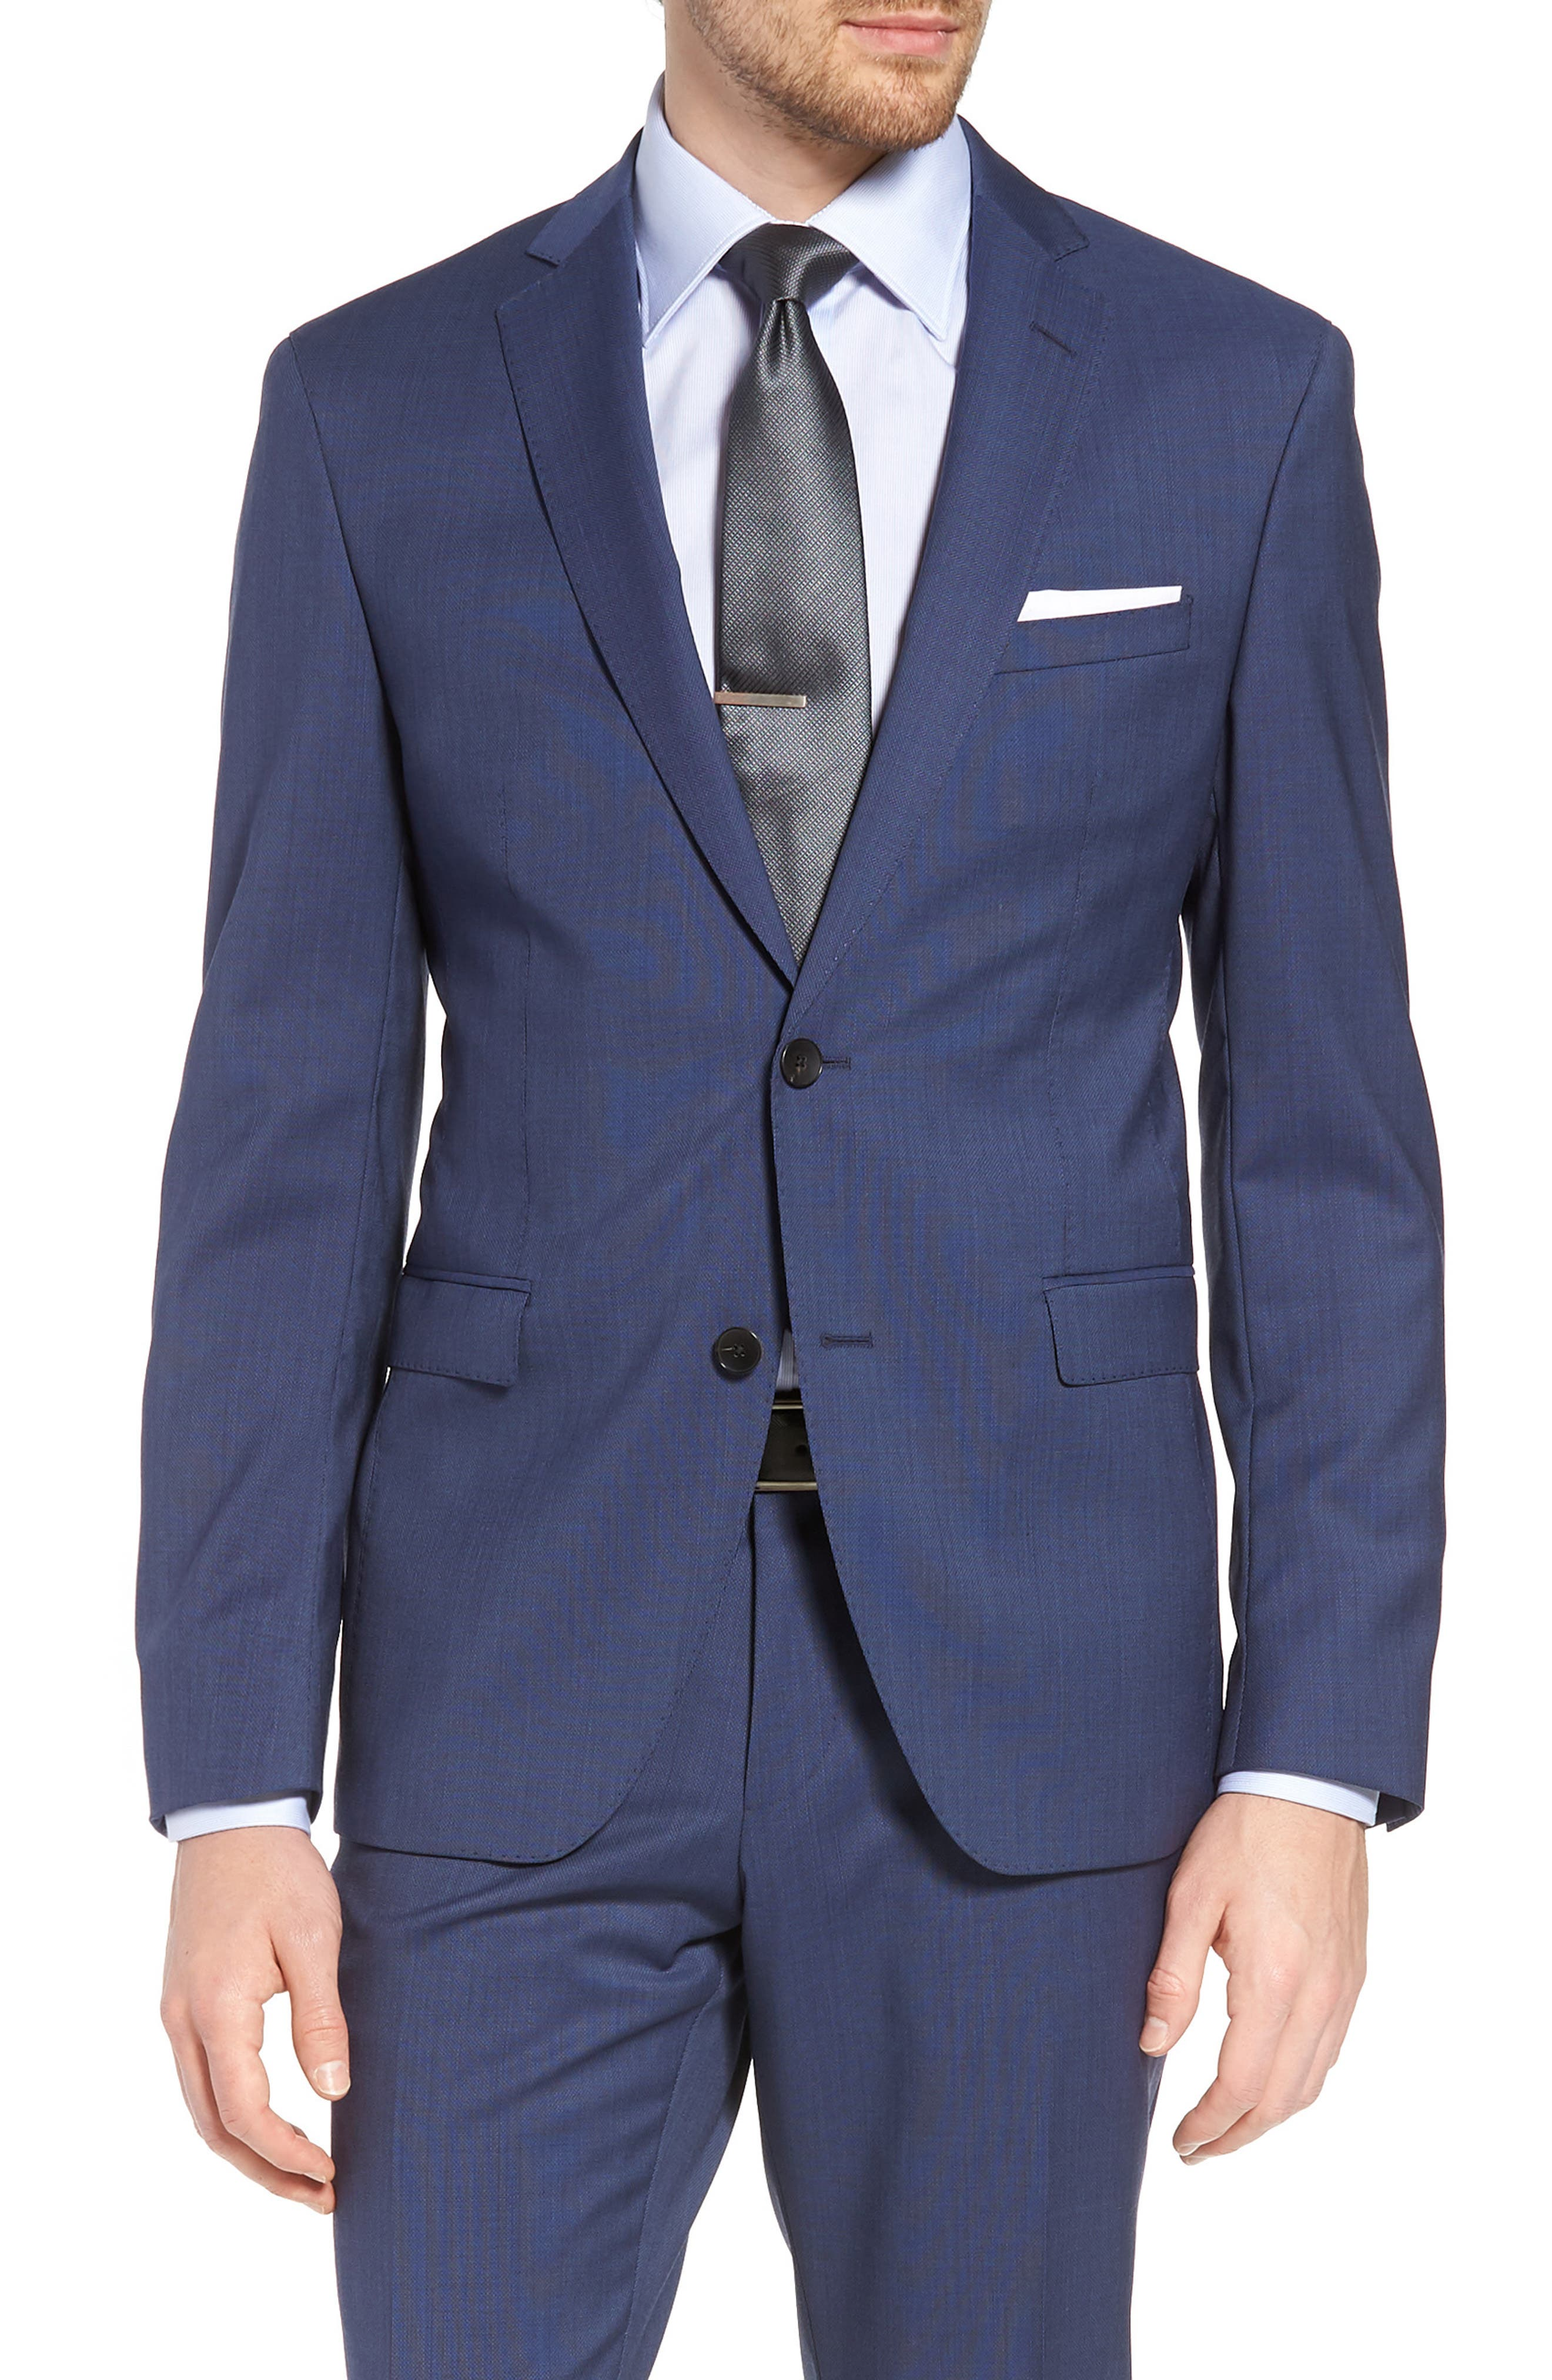 Reyno/Wave Extra Trim Fit Solid Wool Suit,                             Alternate thumbnail 5, color,